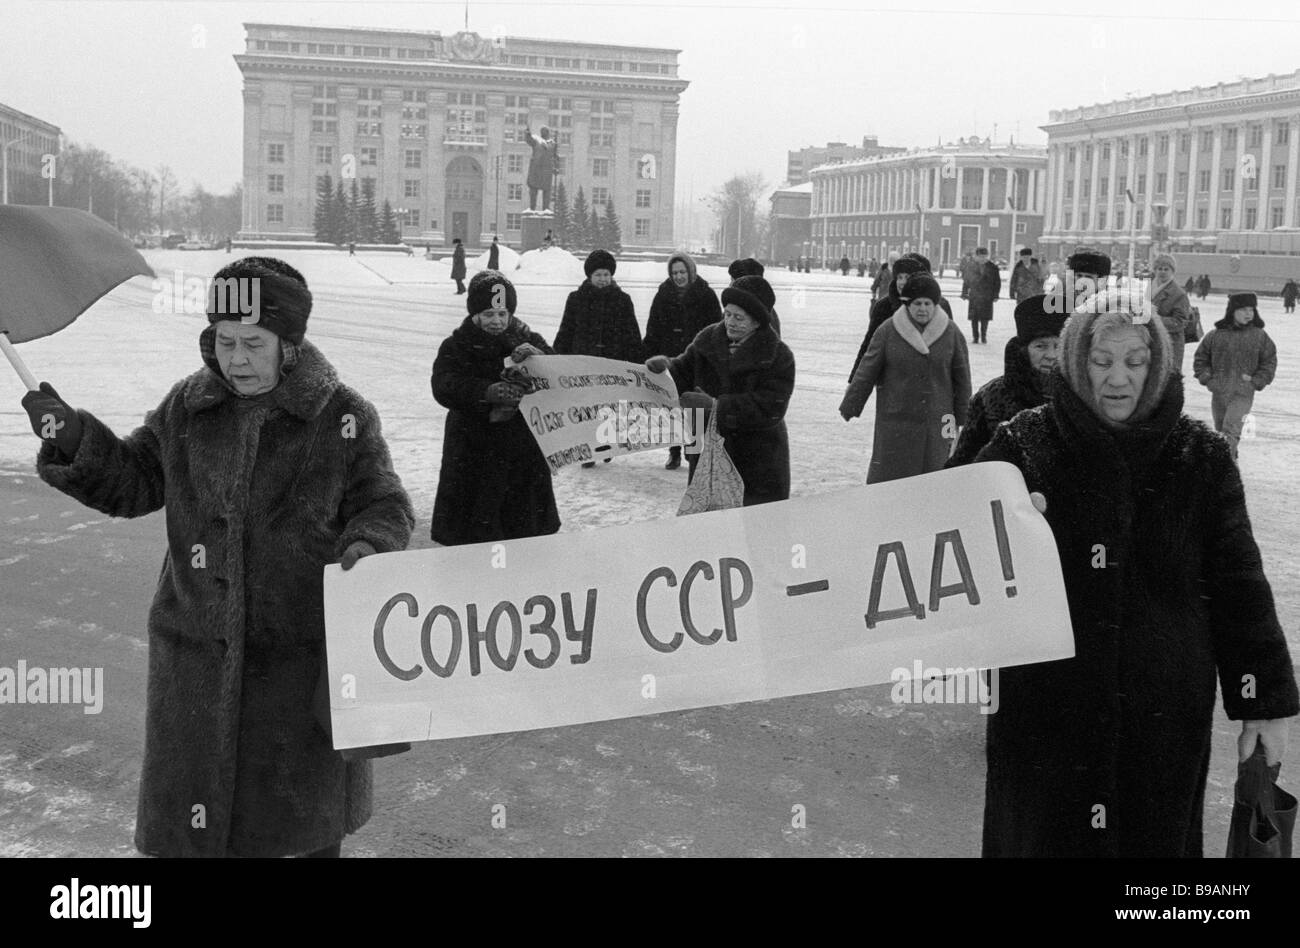 Rally participants protest against the USSR collapse - Stock Image